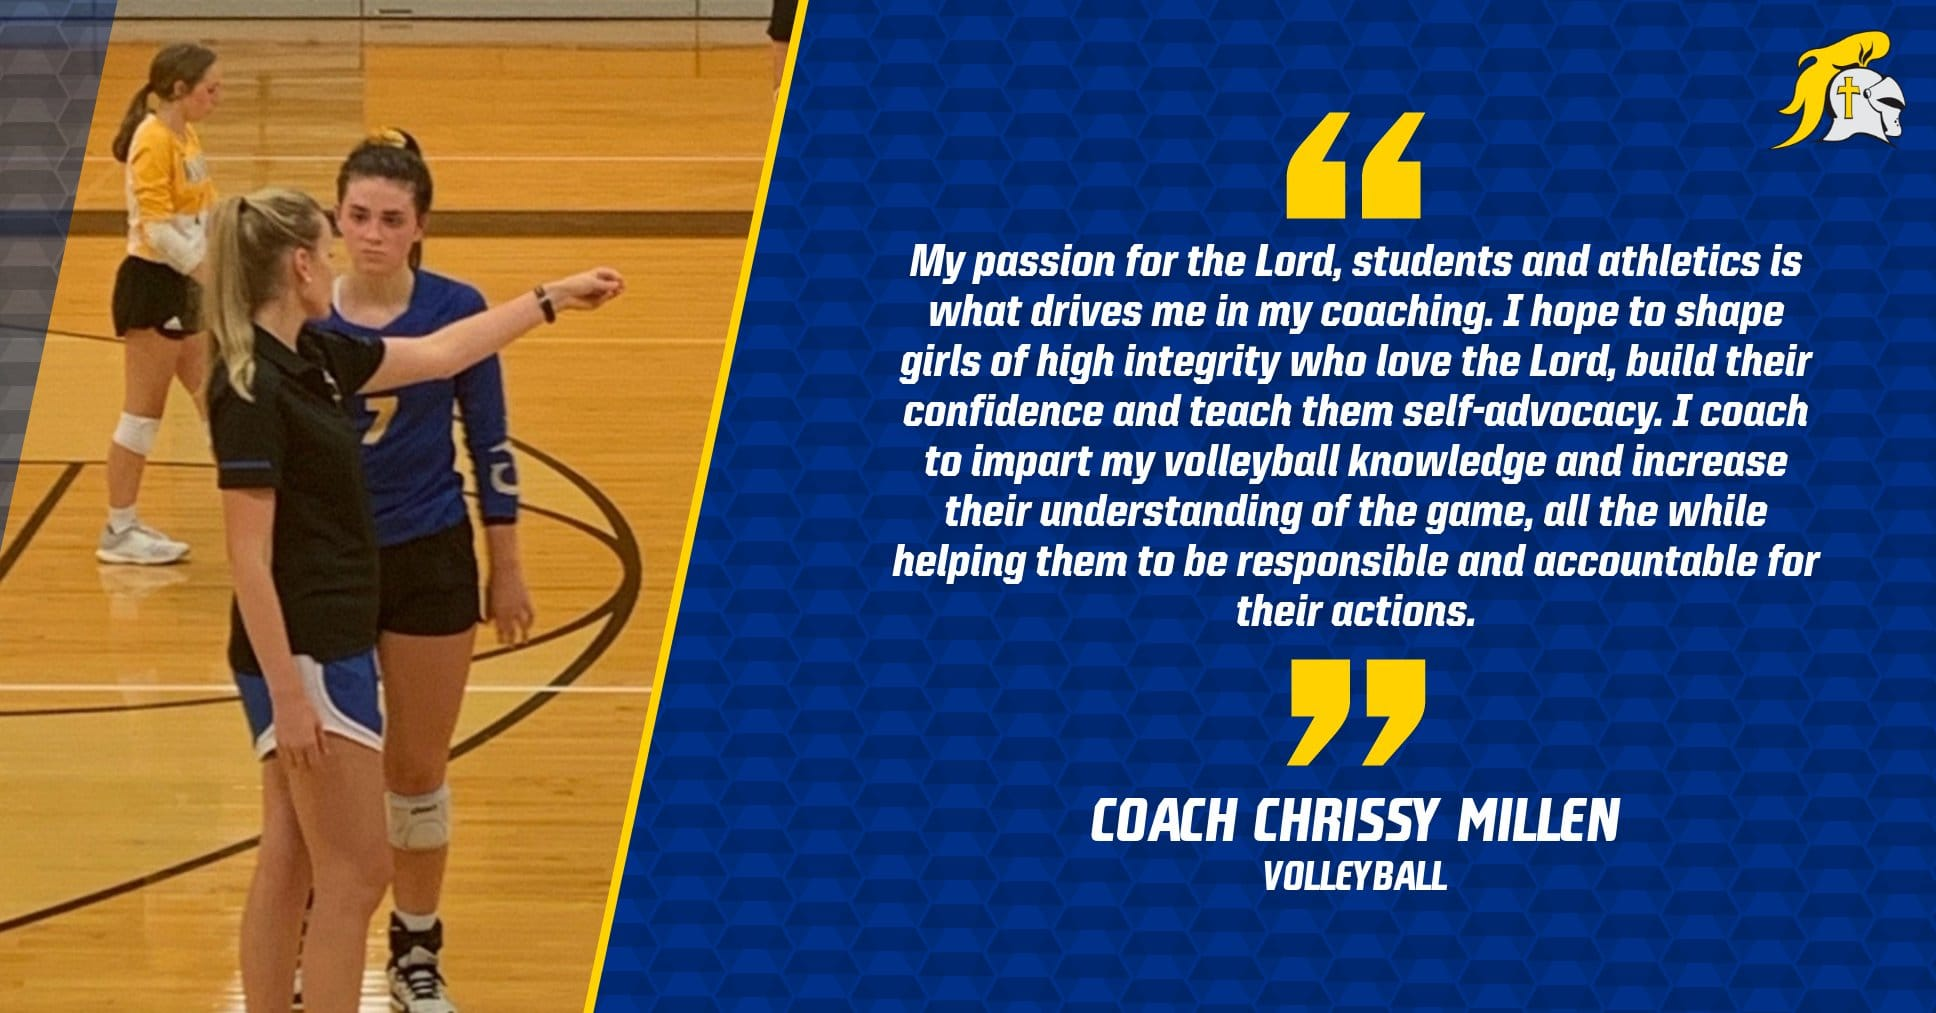 Christian Academy School System   Christian Academy of Indiana   Volleyball   Coach Millen's Transformational Purpose